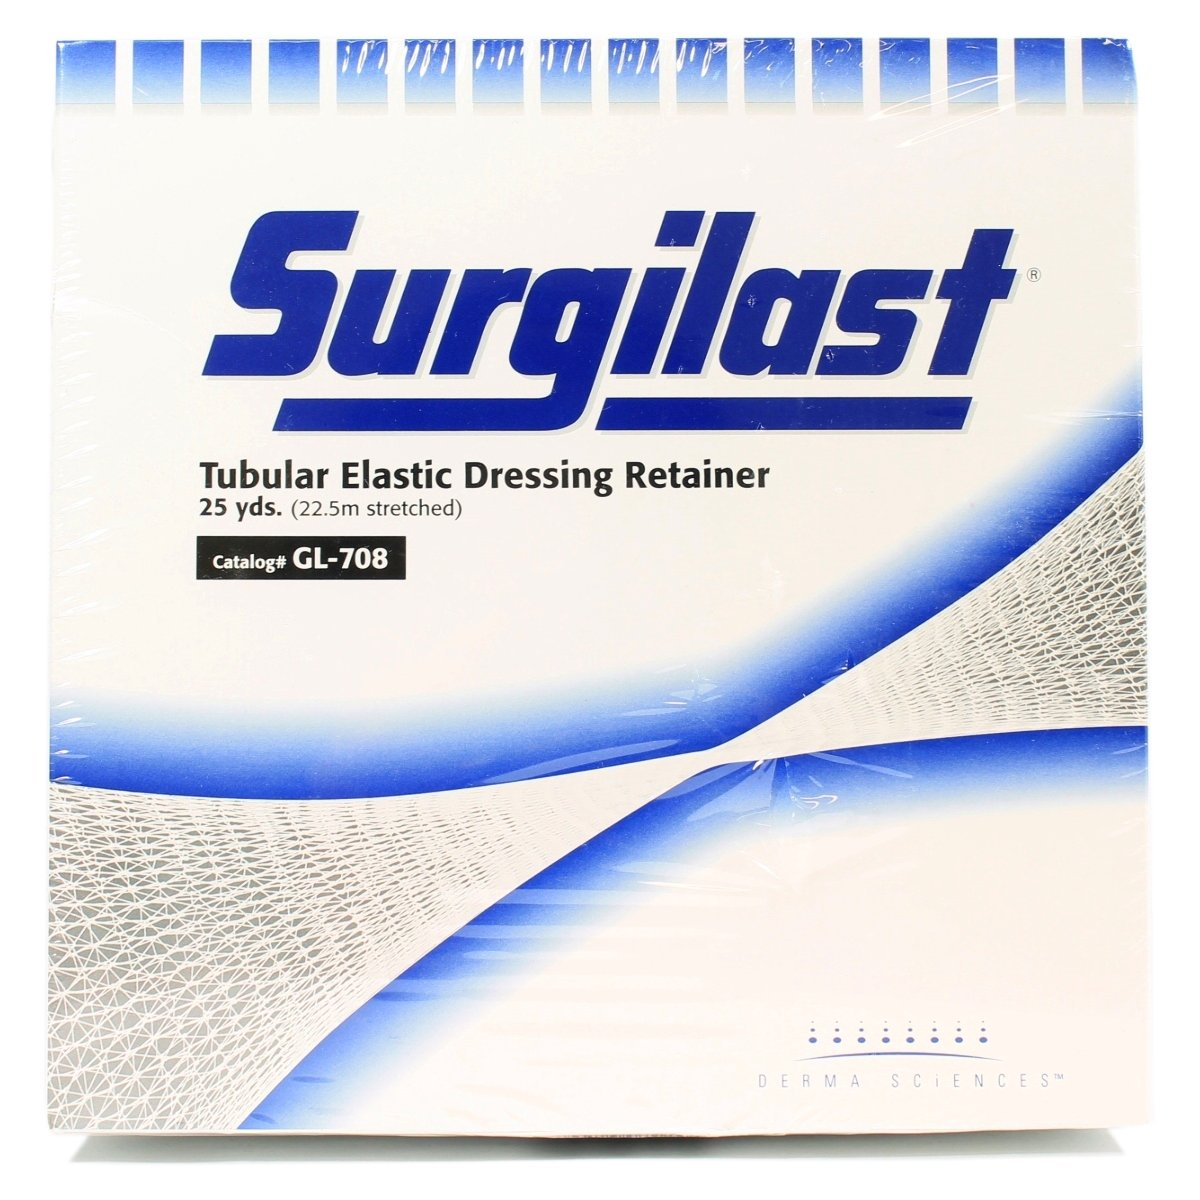 GL708 - Surgilast Tubular Elastic Dressing Retainer, Size 7, 29 x 25 yds. (Small: Chest, Back, Perineum and Axilla)